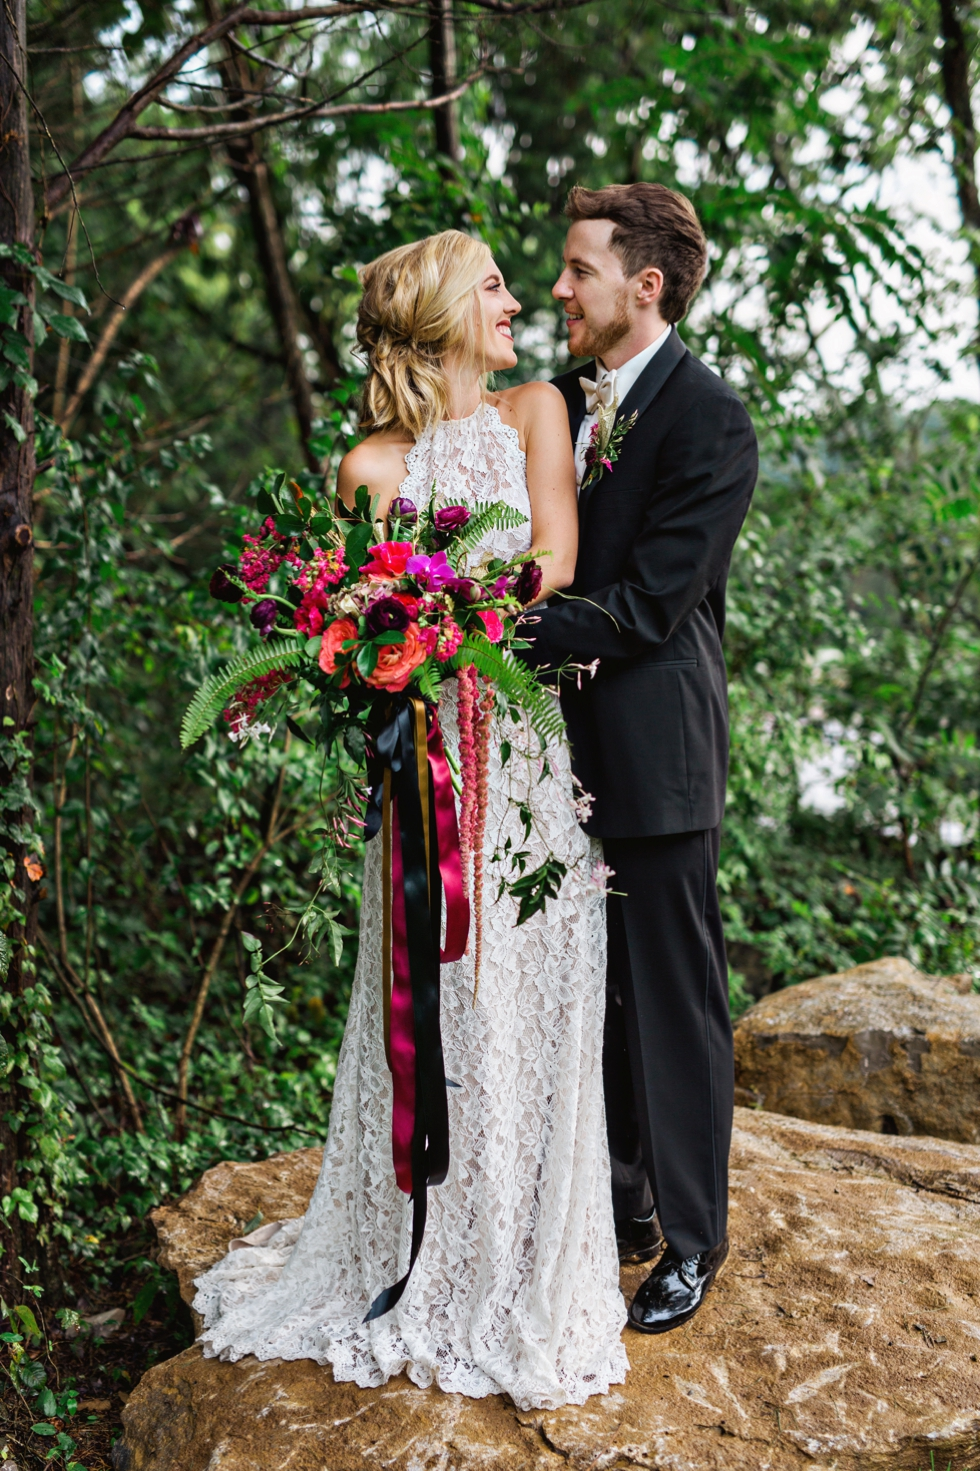 Nashville Wedding Photographer at Graystone Quarry Boho Wedding